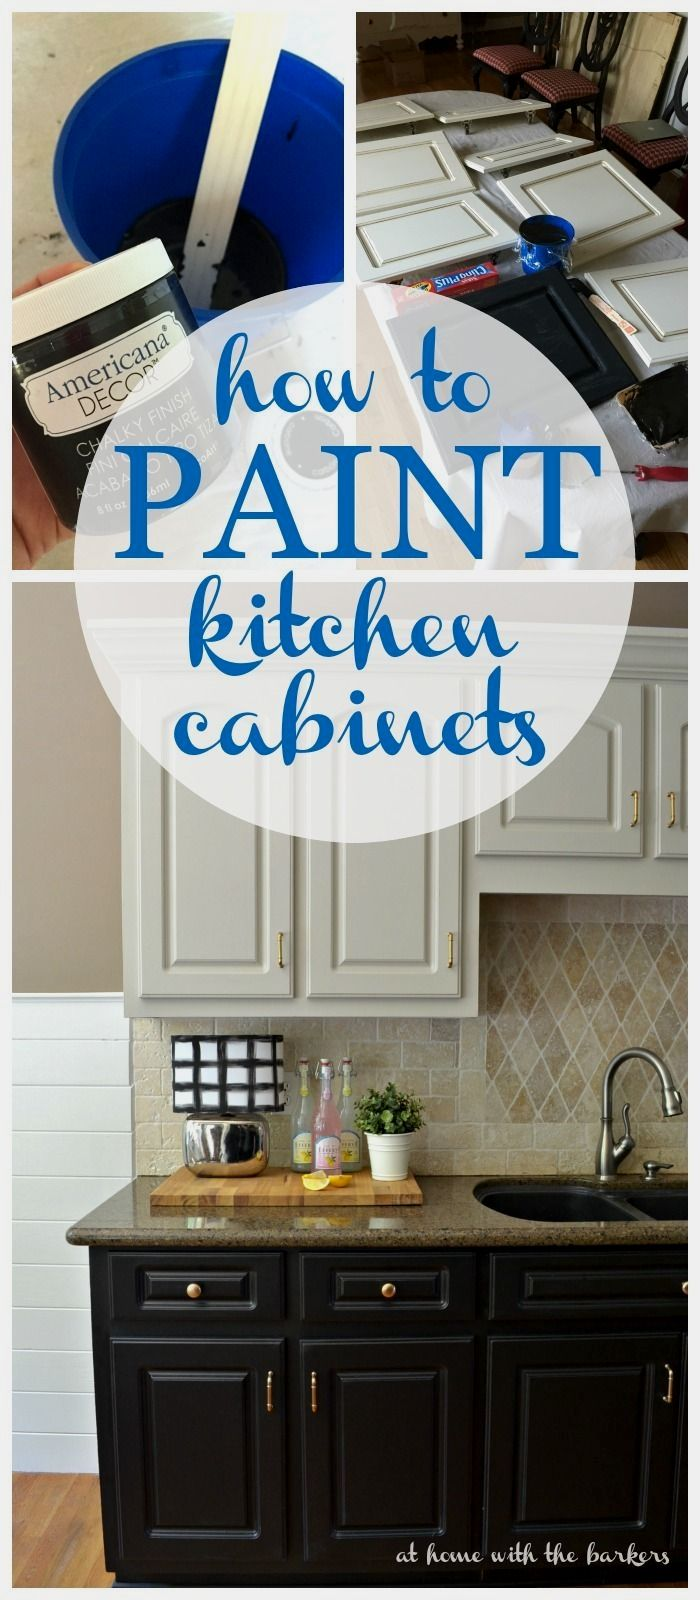 Creative kitchen cabinet color ideas check the pic for various